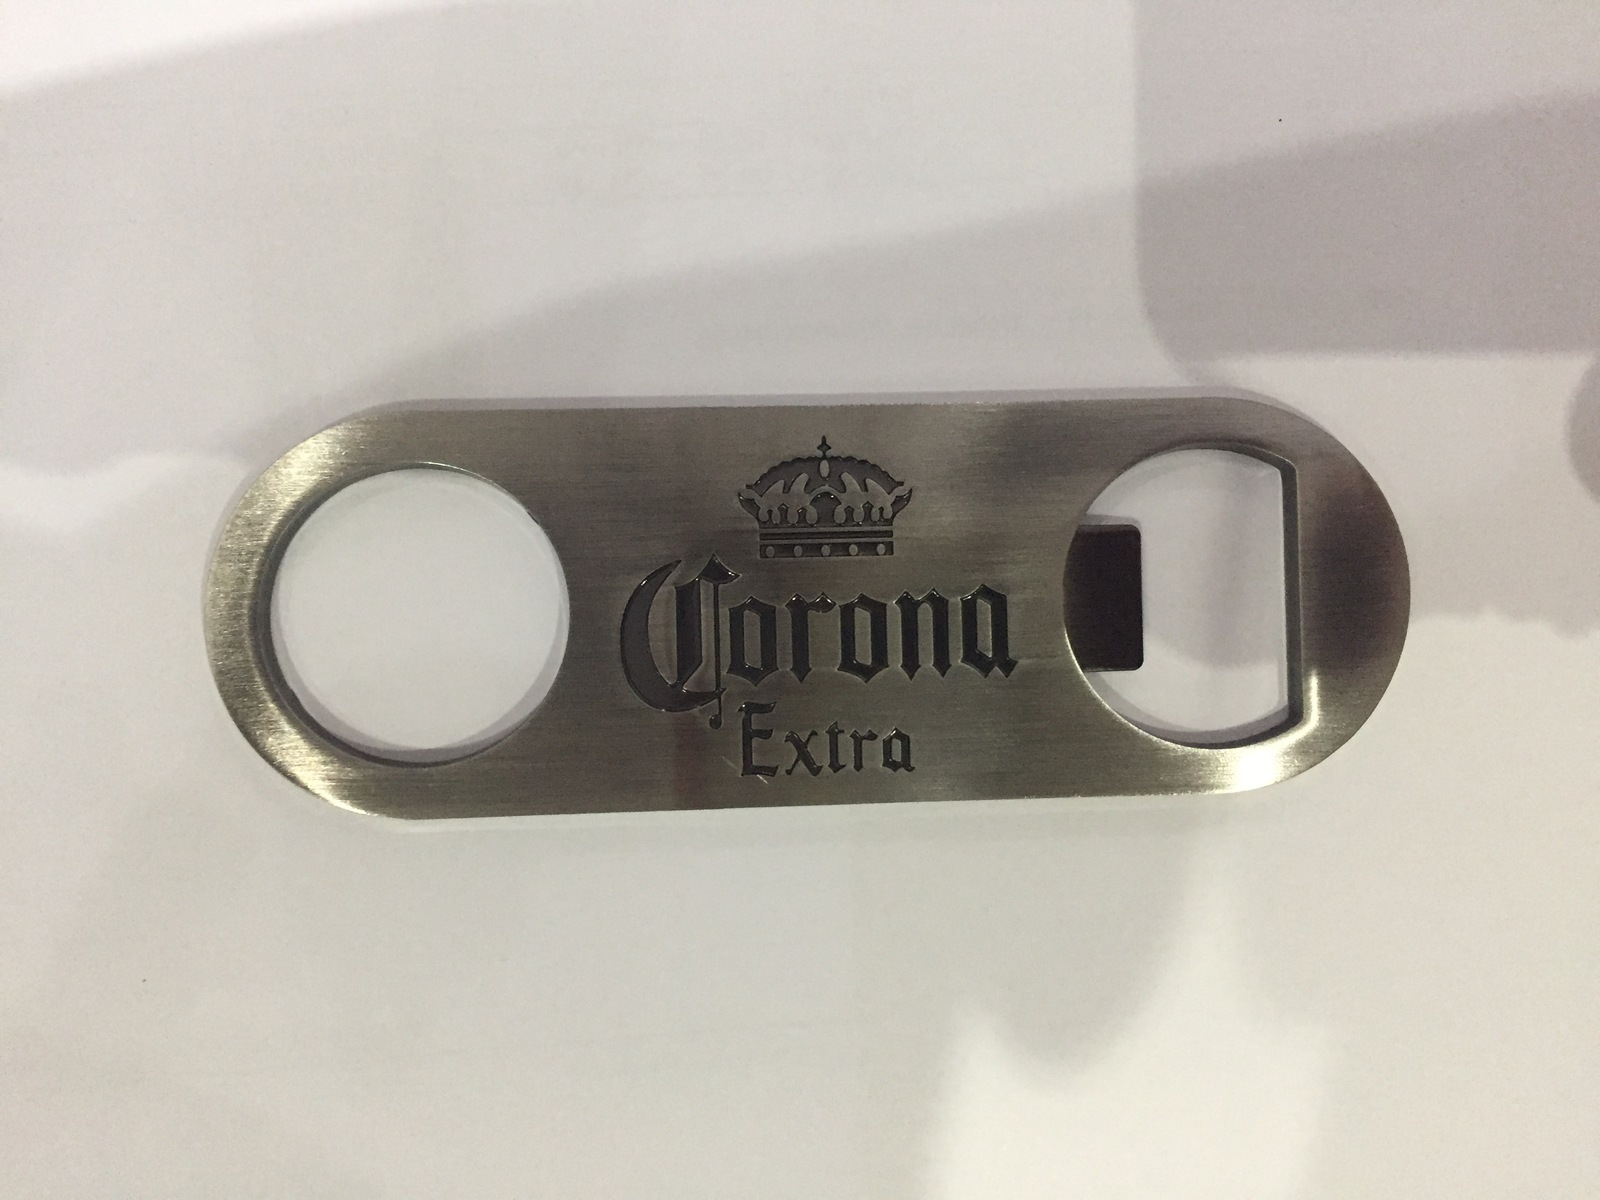 Corona Bottle Opener Bar Blade